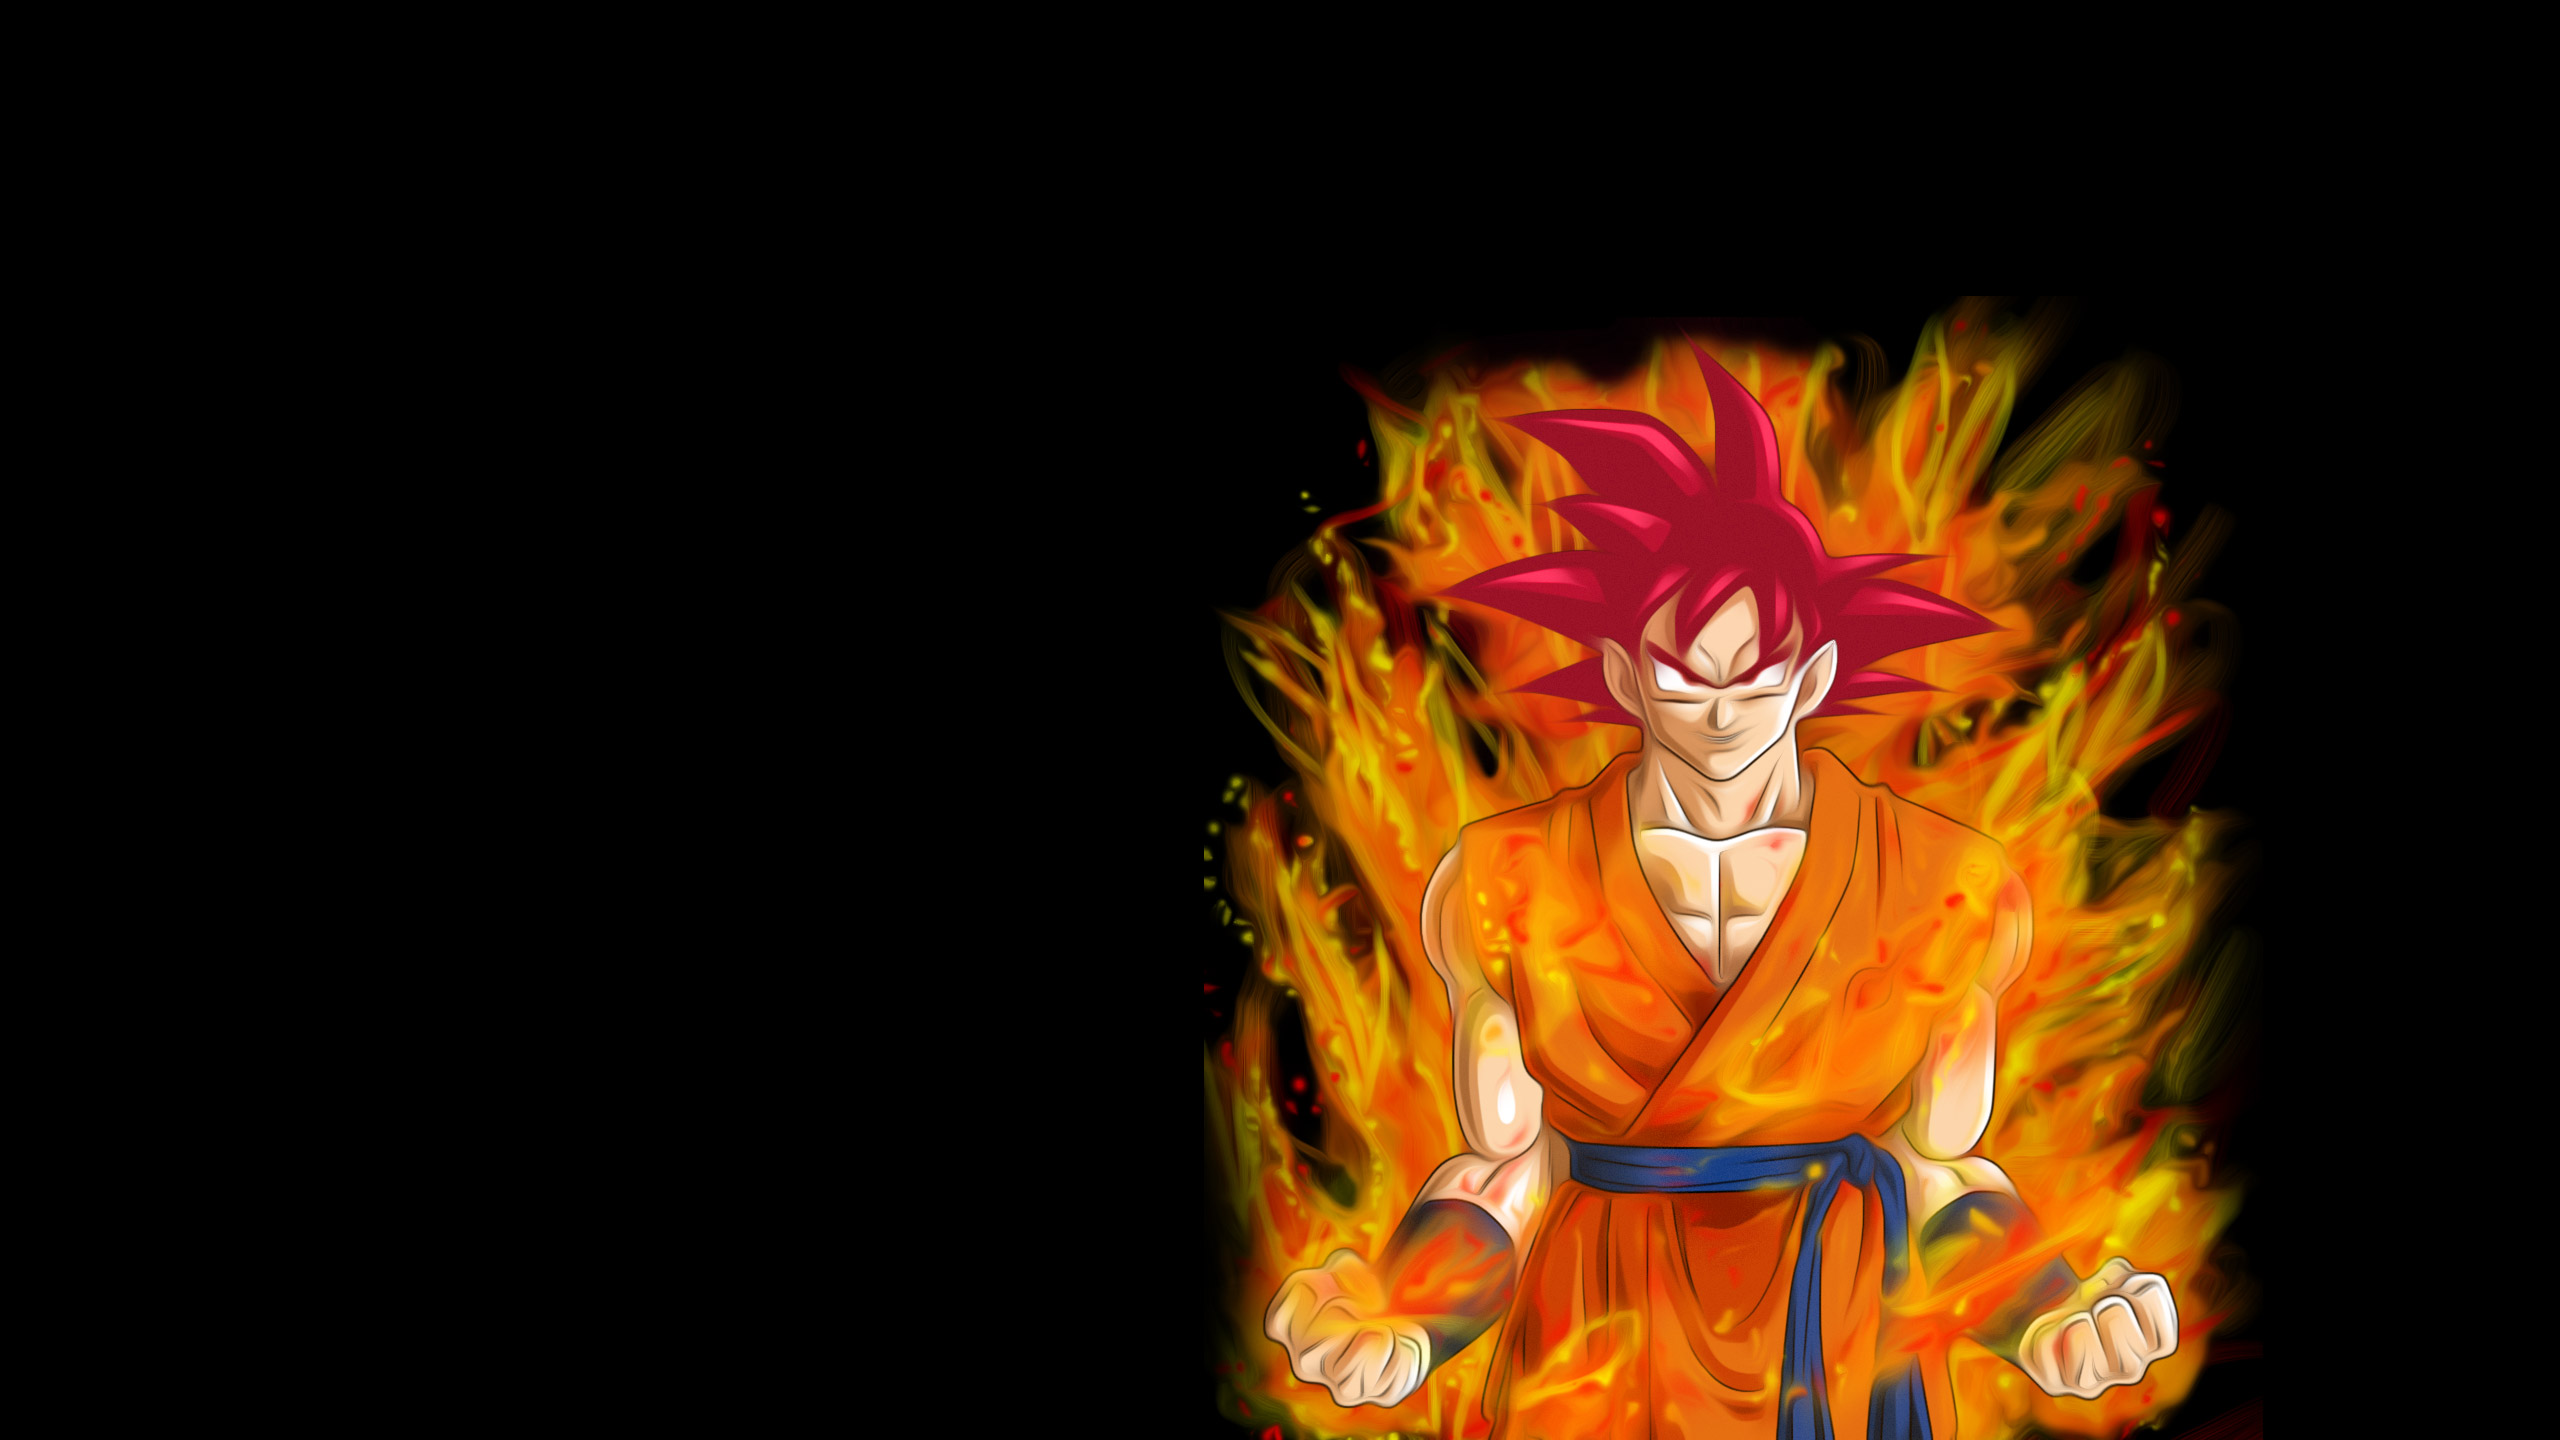 540x960 dragon ball super goku 540x960 resolution hd 4k wallpapers